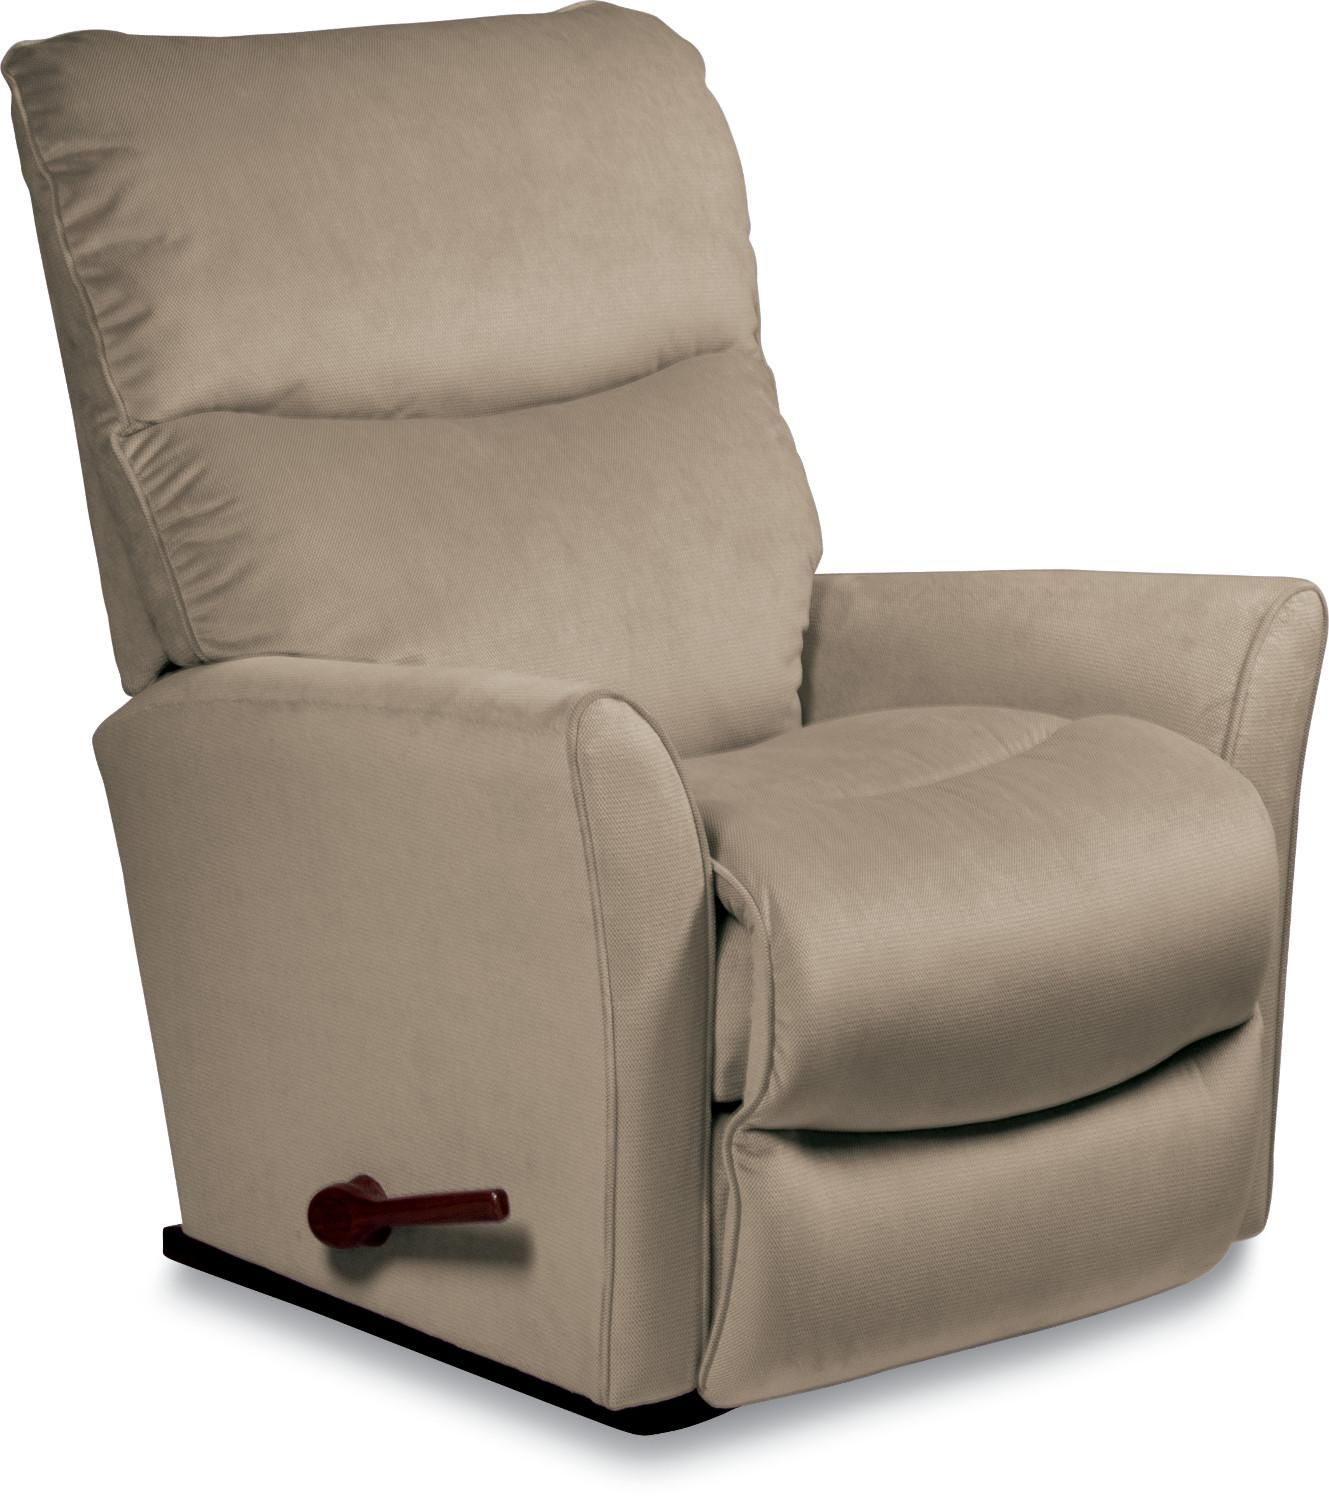 11+ Lazy boy recliners with lumbar support ideas